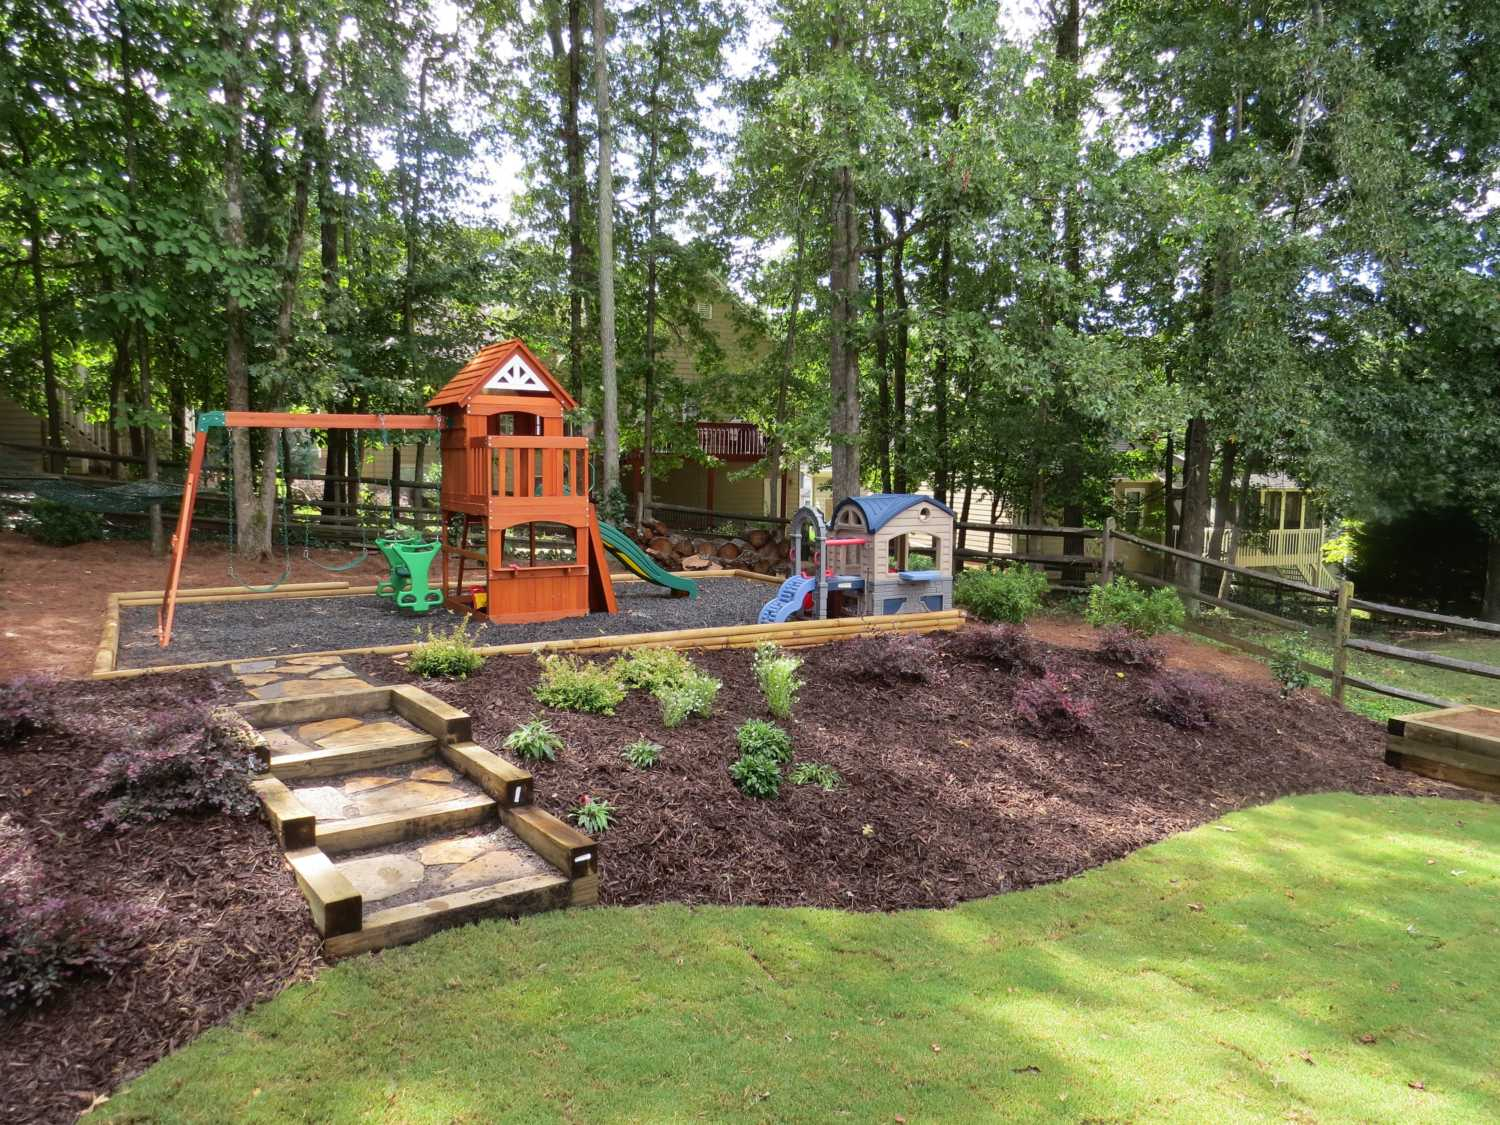 Hill Landscaping Design Landscaping And Gardening for 15 Genius Ideas How to Improve Backyard Hill Landscaping Ideas